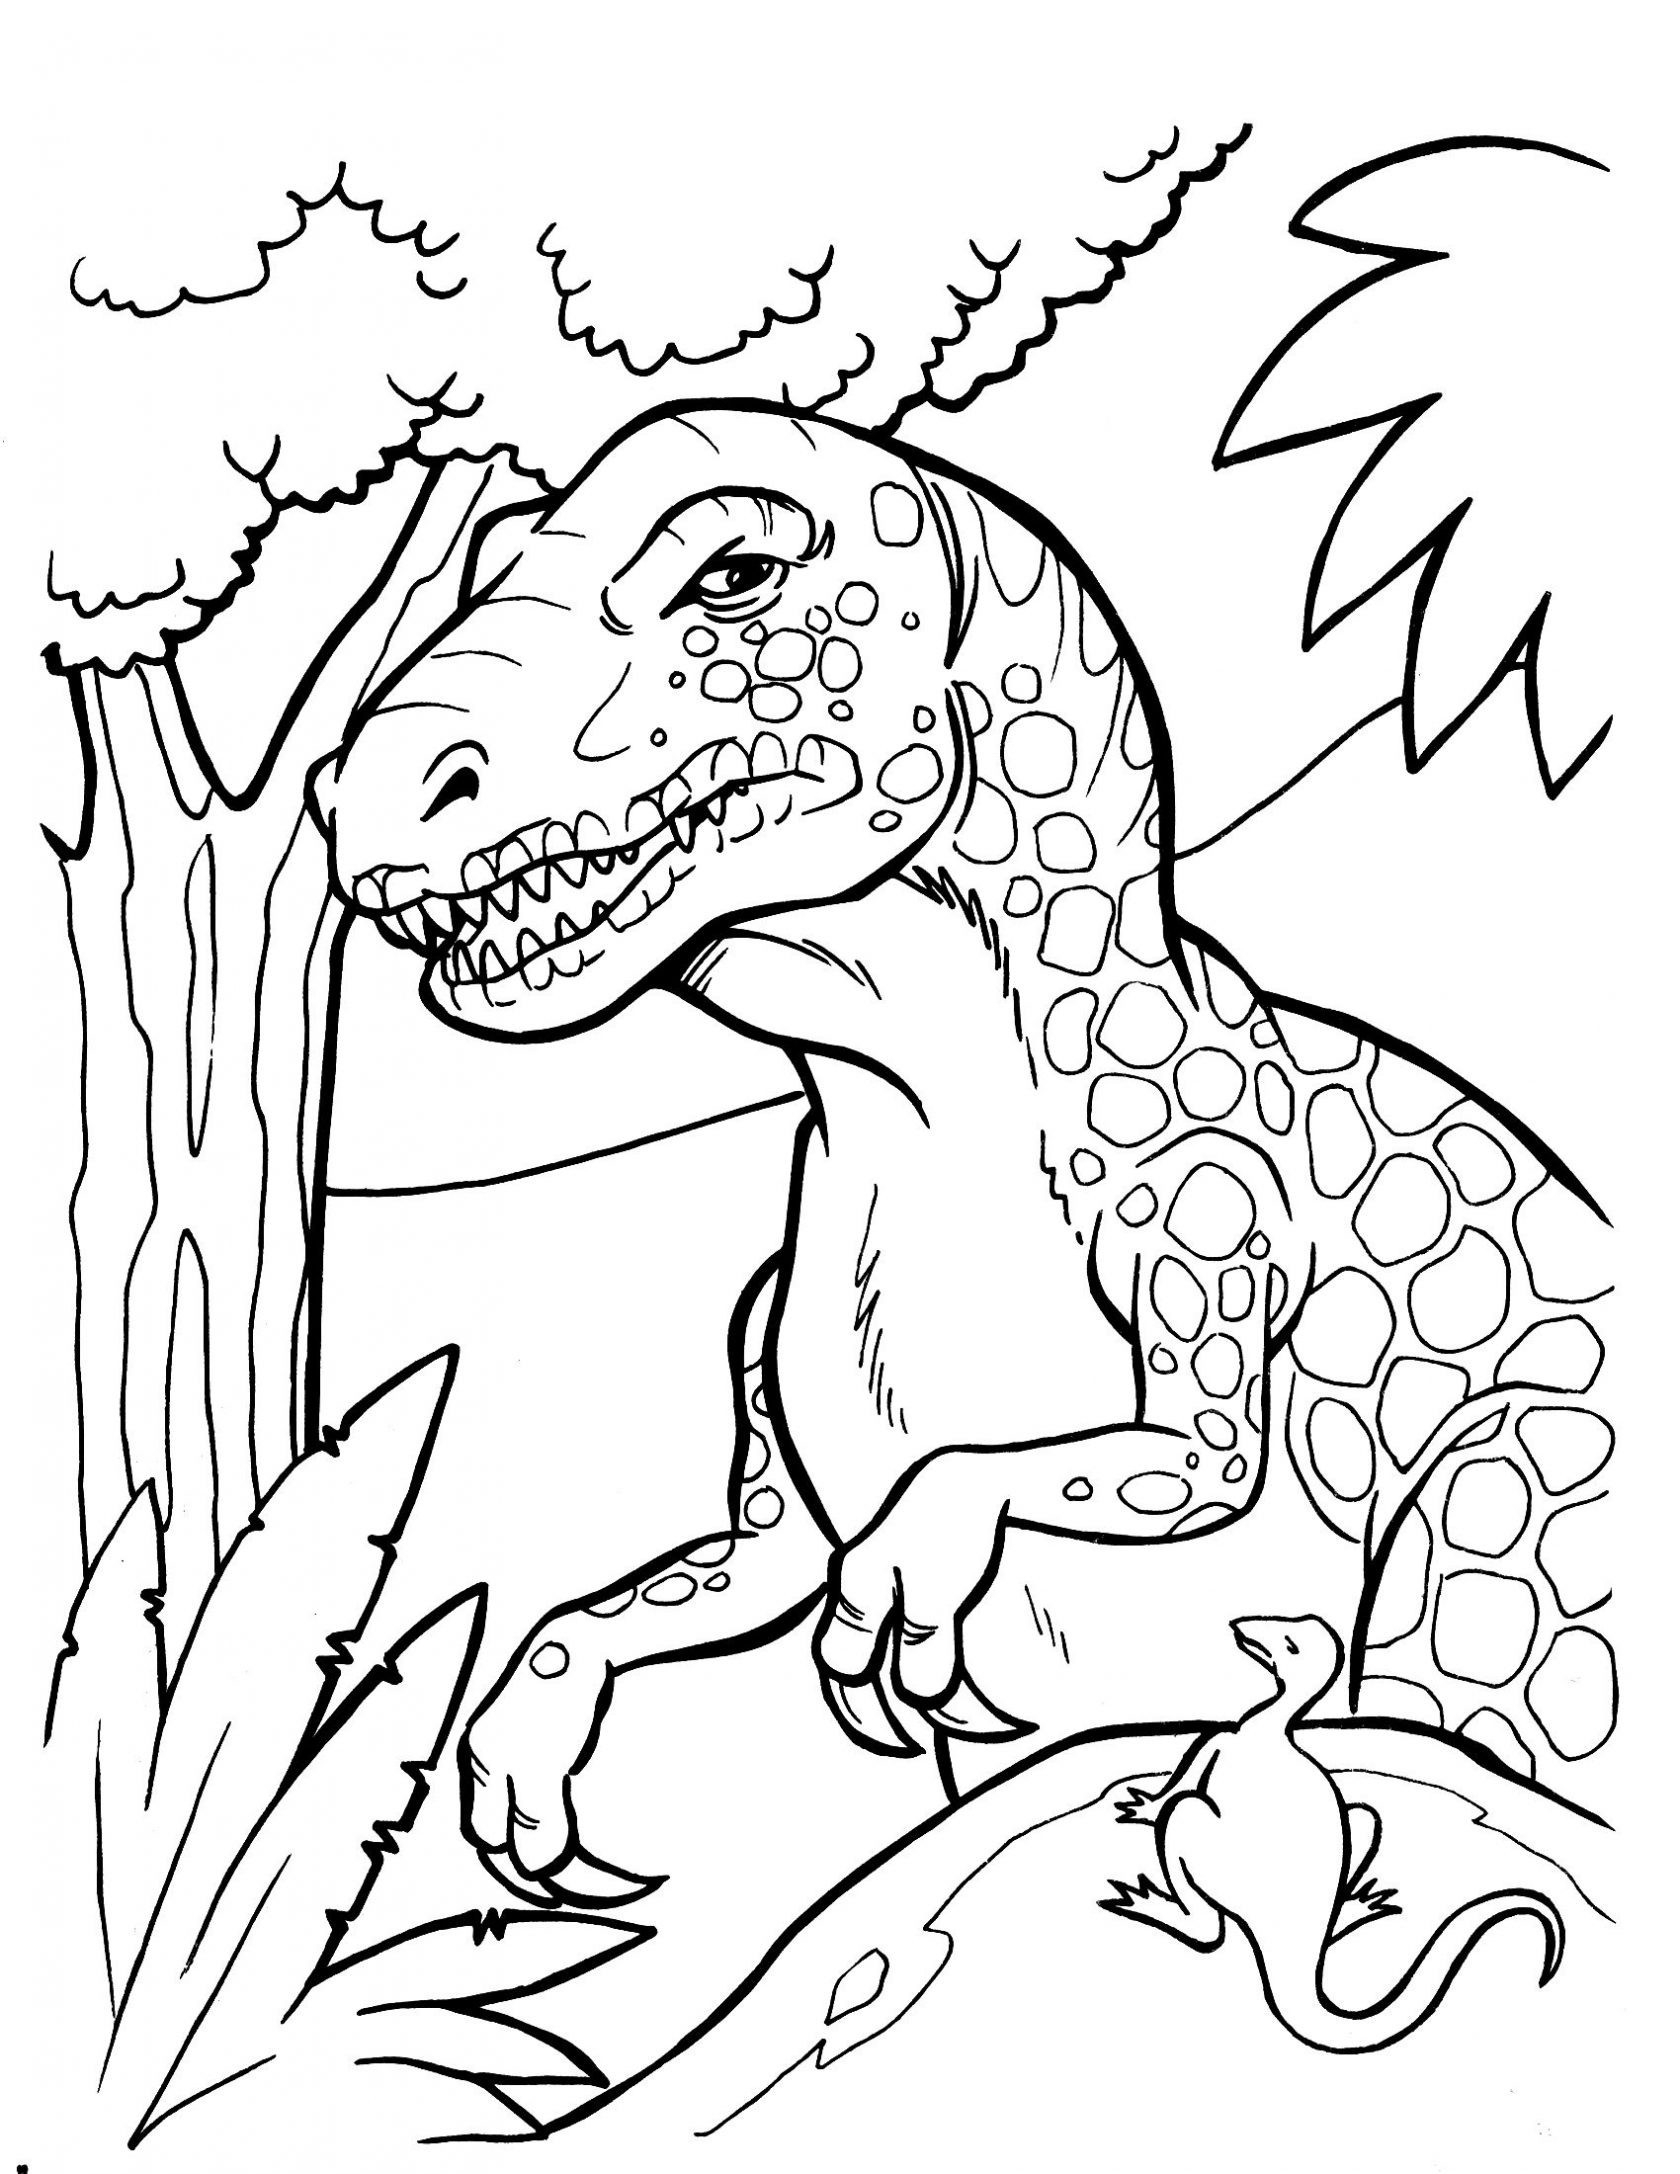 Scary Dinosaur Coloring Pages Dinosaur Coloring Page Scary Pages Tingameday